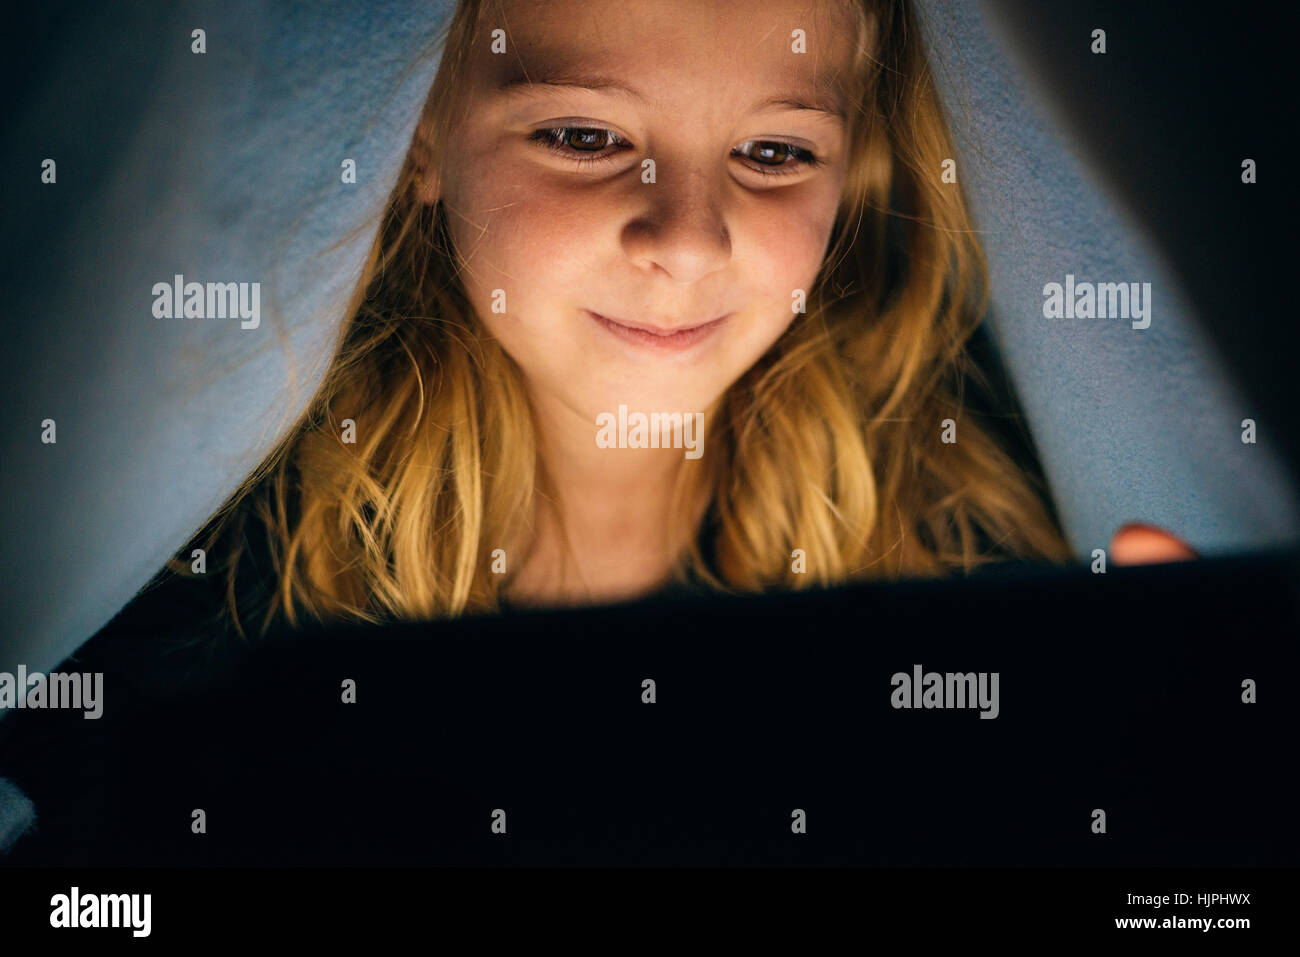 Sweet blondie girl playing on a Tablet PC. - Stock Image